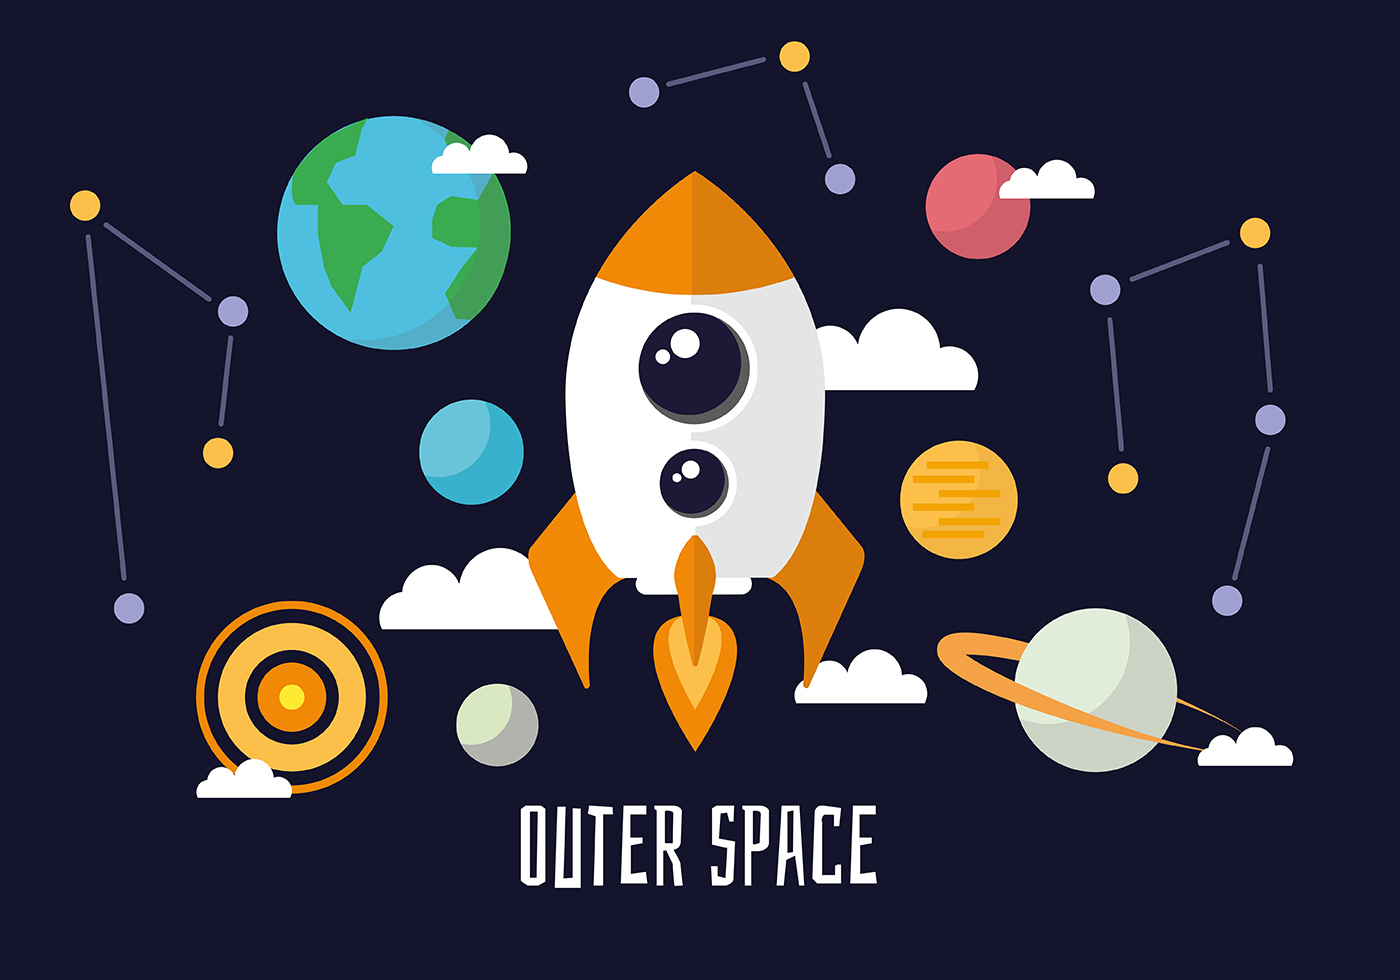 Free flat space landscape vector background download for Outer space wallpaper design